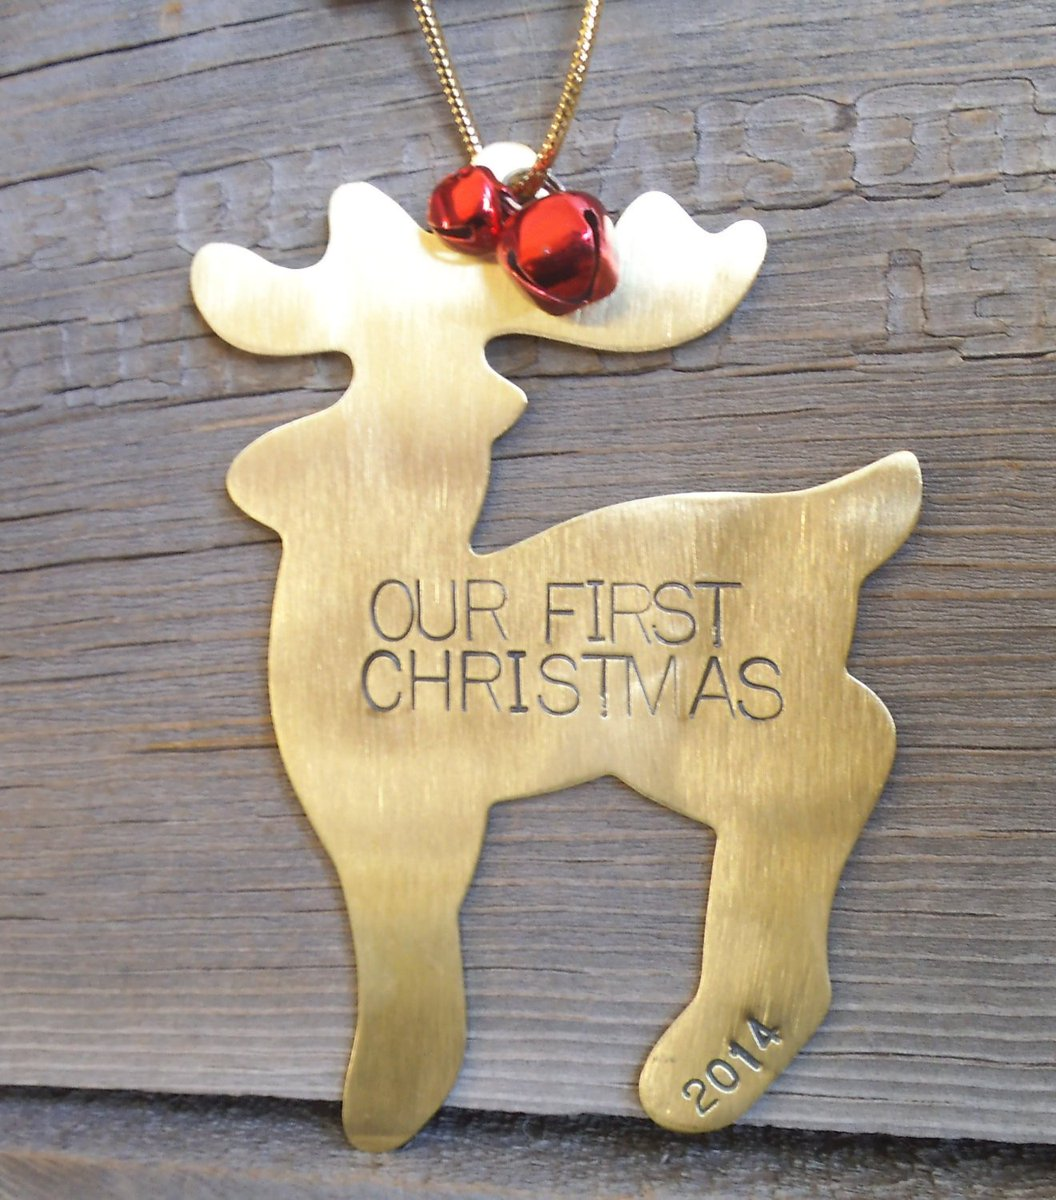 Personalized Ornament Personalize Christmas Ornaments Our First Christmas 1st Christmas Together Mr and Mrs Ornament First Year Husband Wife http://tuppu.net/f3872558 #Shopify #CandTCustomLures #Housewares